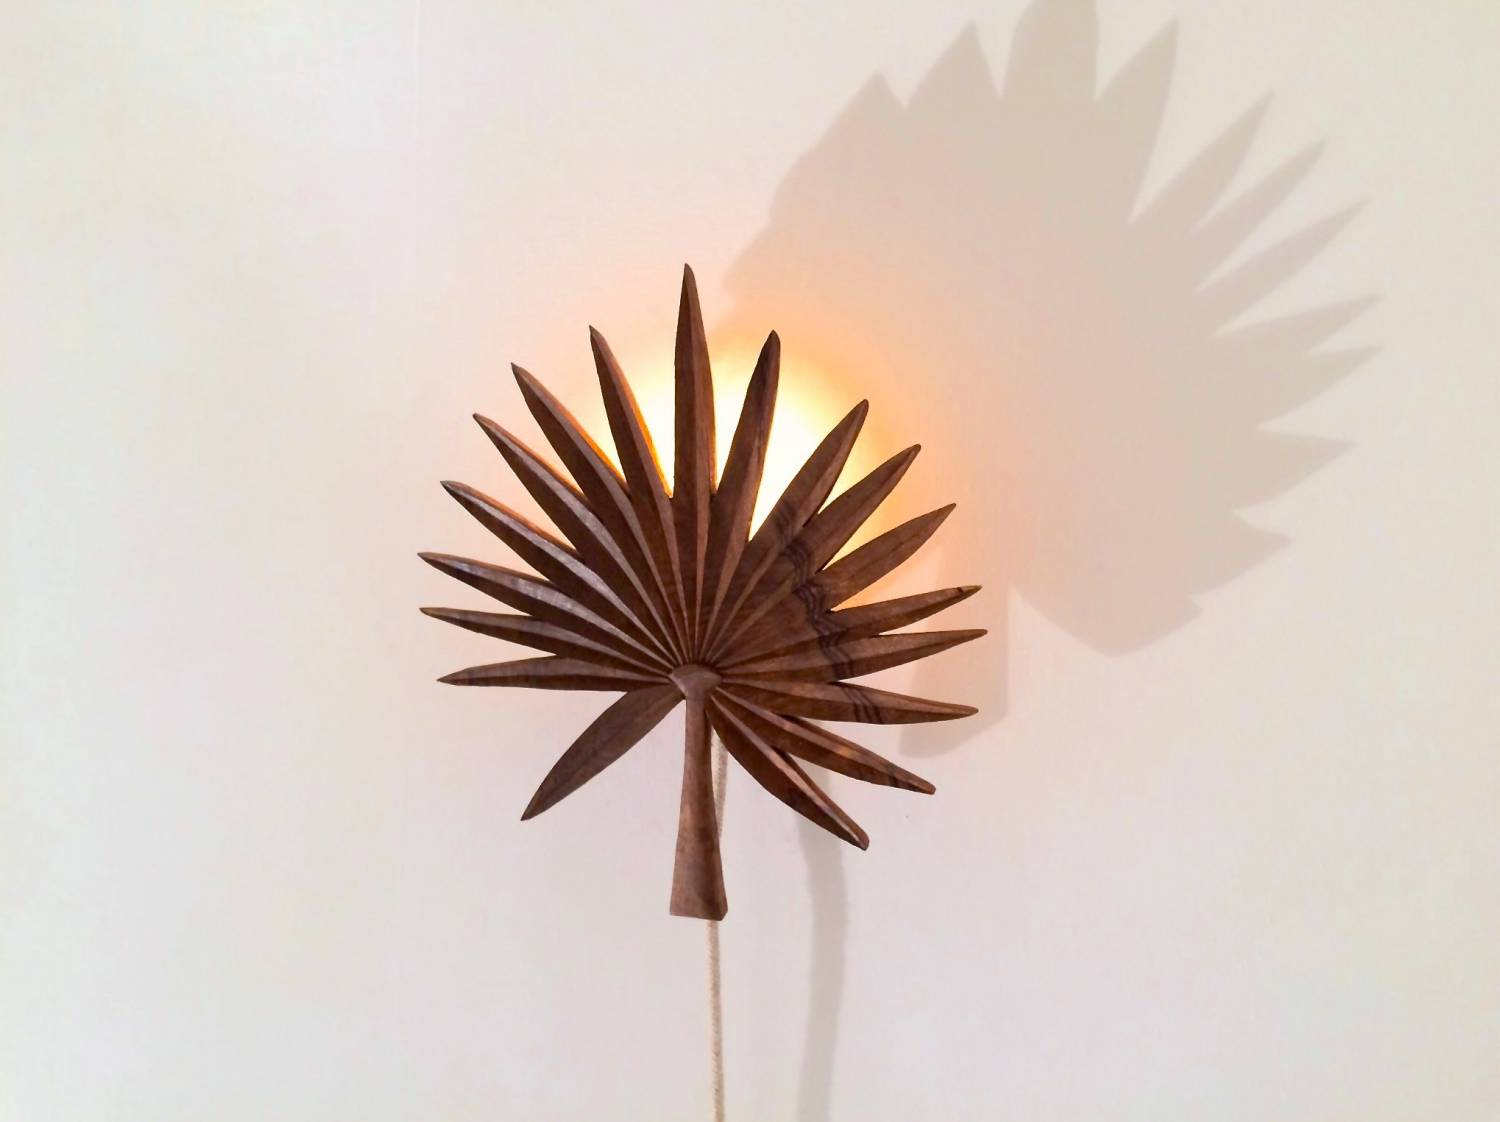 Palme wall light by François Bazin | on Flodeau.com